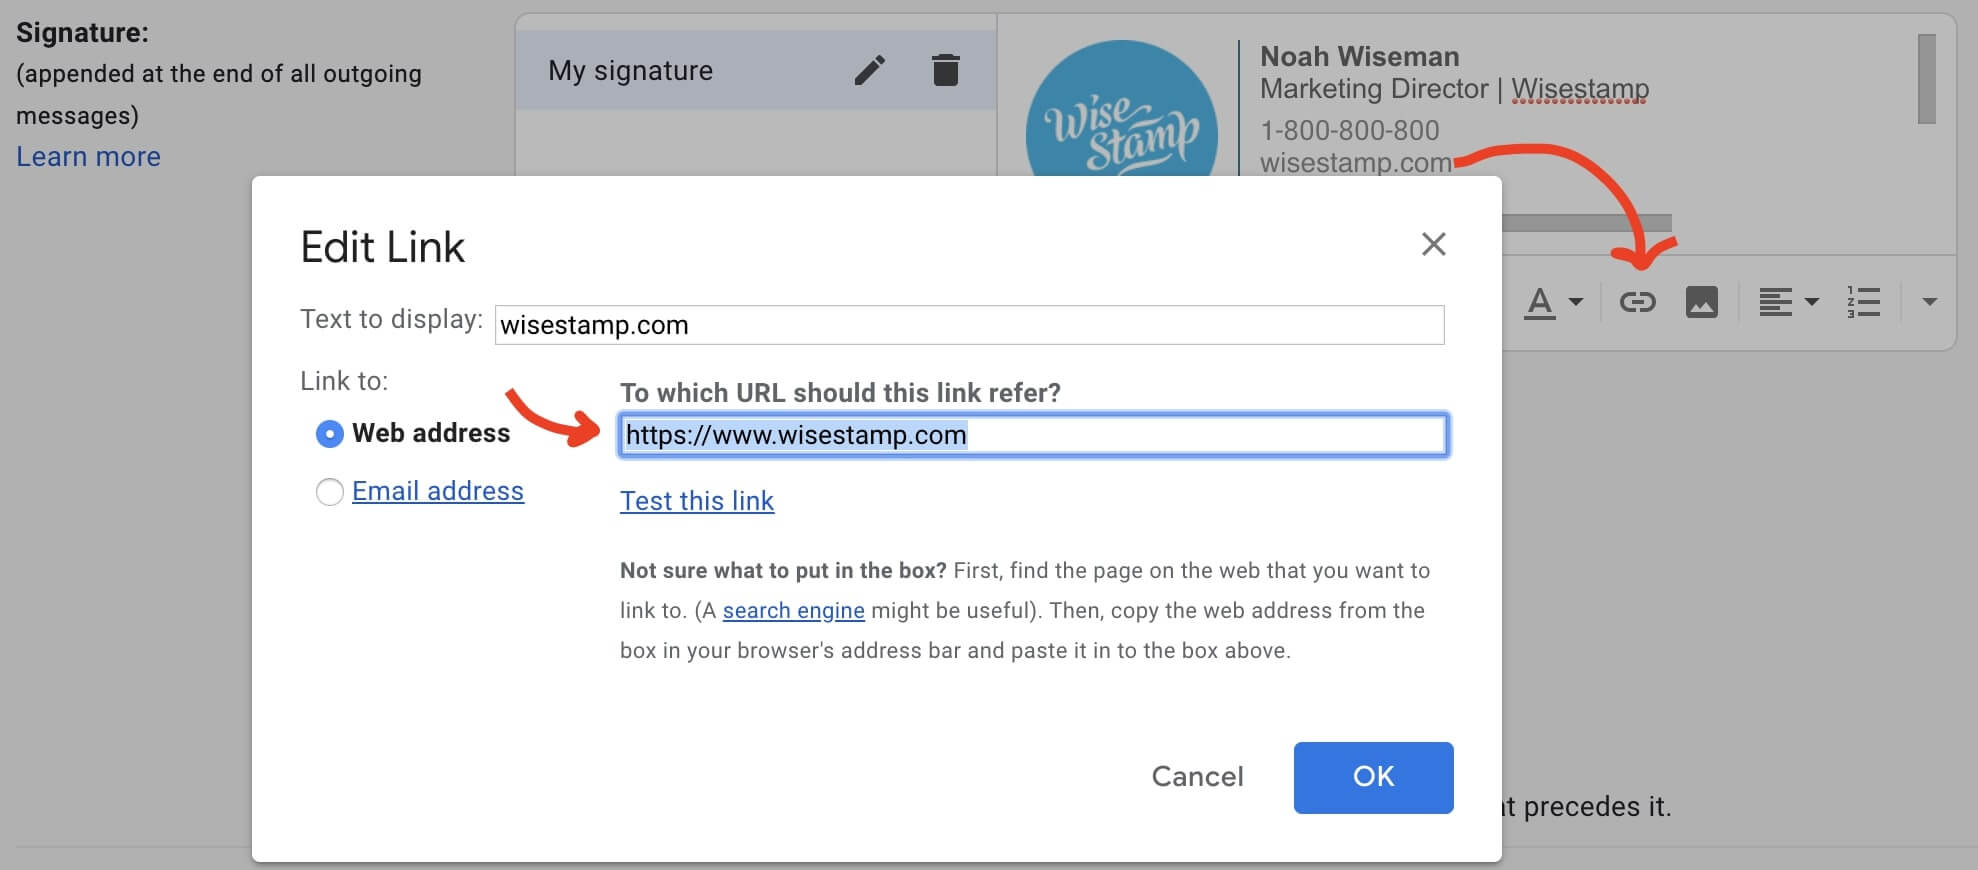 how to add a hyperlink in gmail - step 4